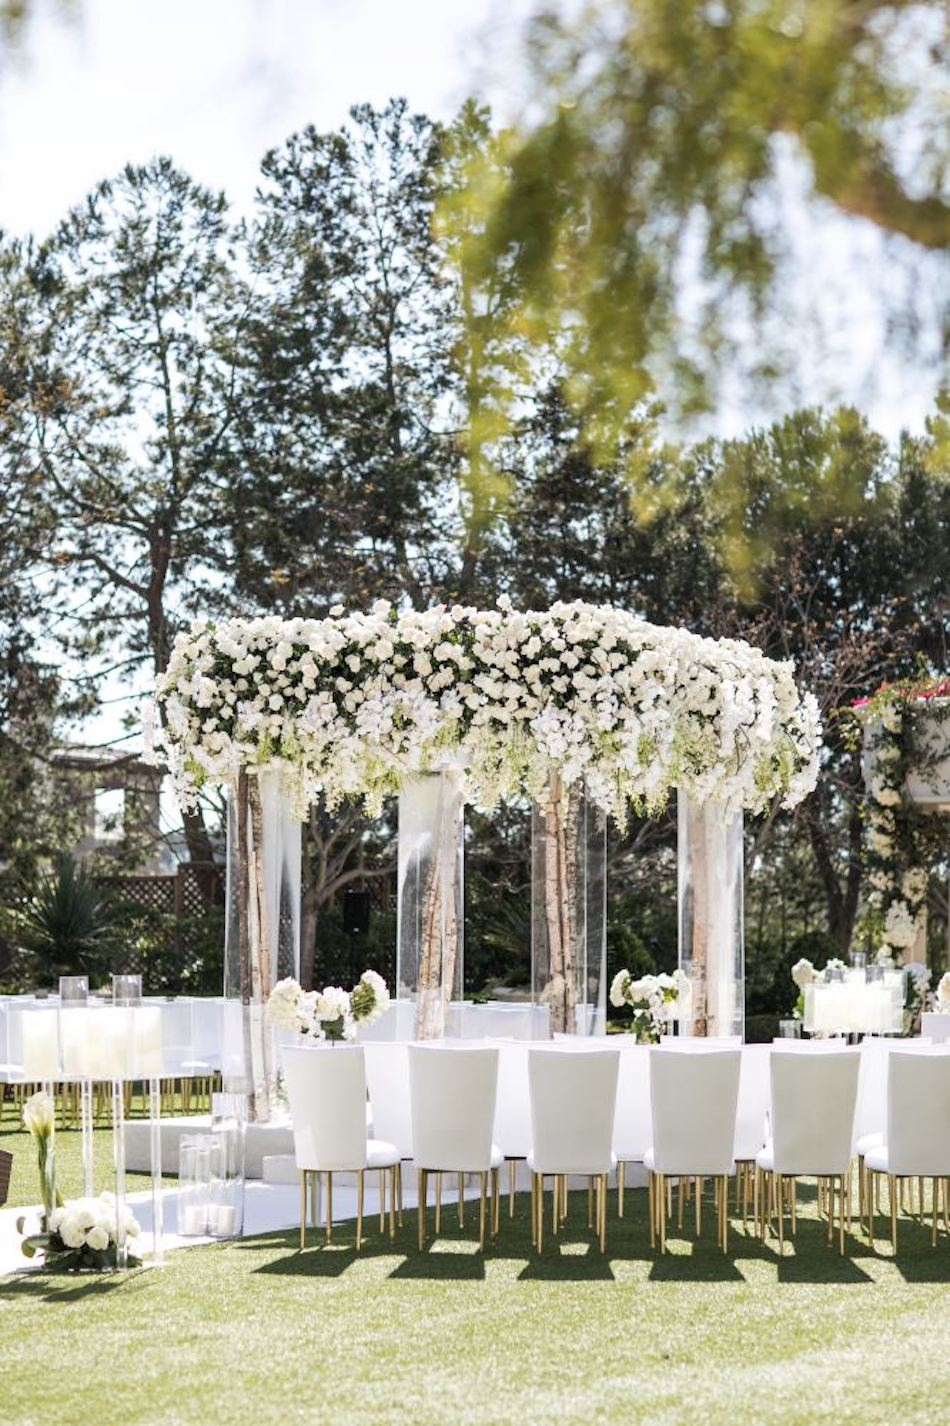 Outdoor Monarch Beach Resort Wedding Ceremony Featured in Inside Weddings